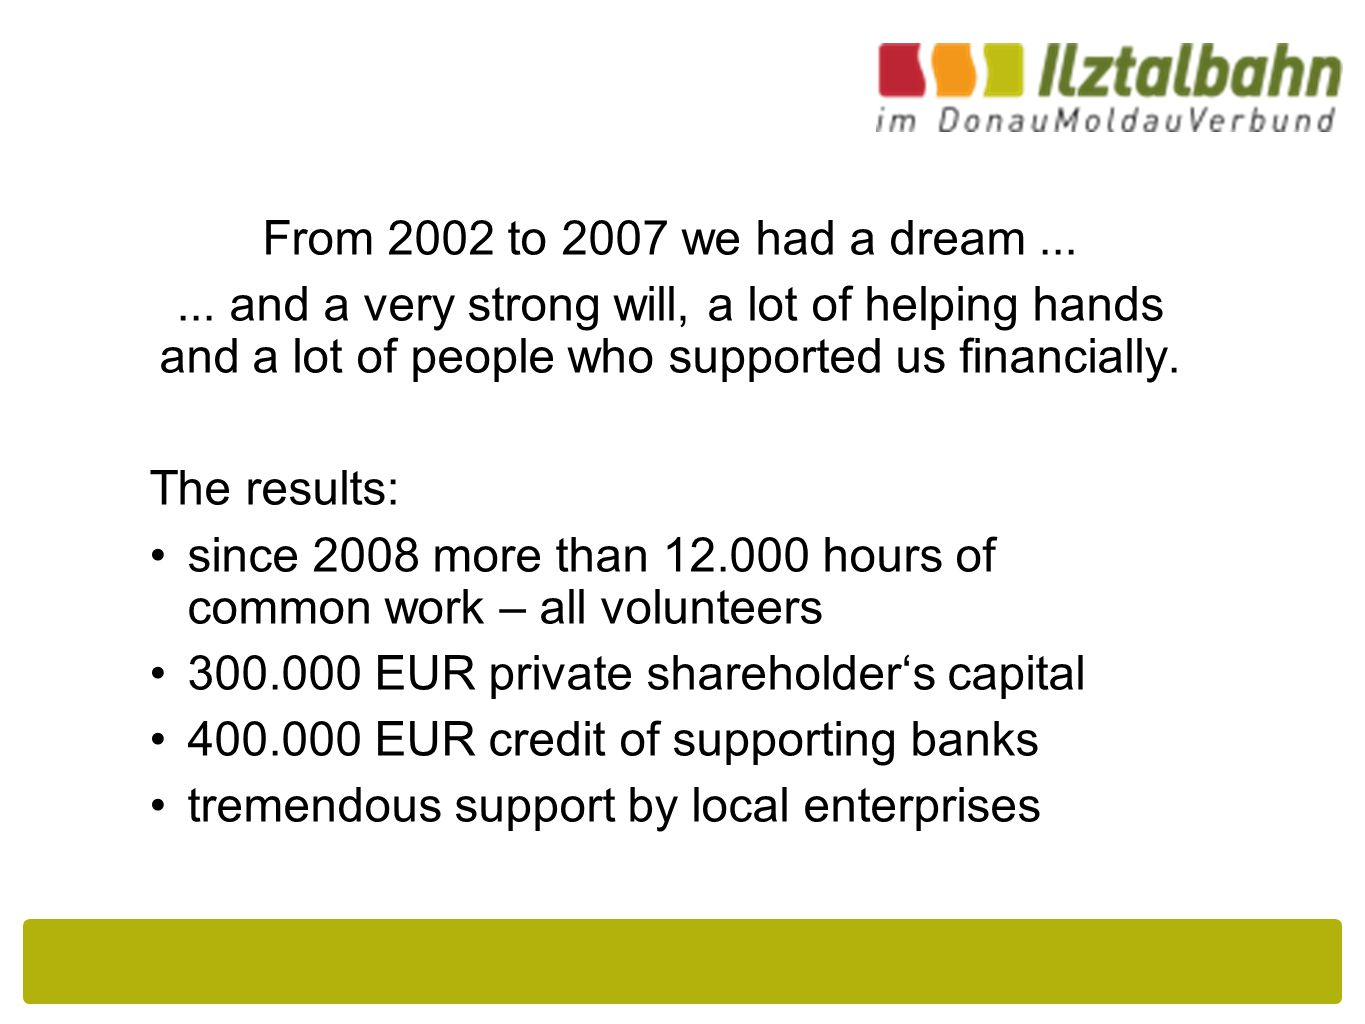 From 2002 to 2007 we had a dream...... and a very strong will, a lot of helping hands and a lot of people who supported us financially. The results: s